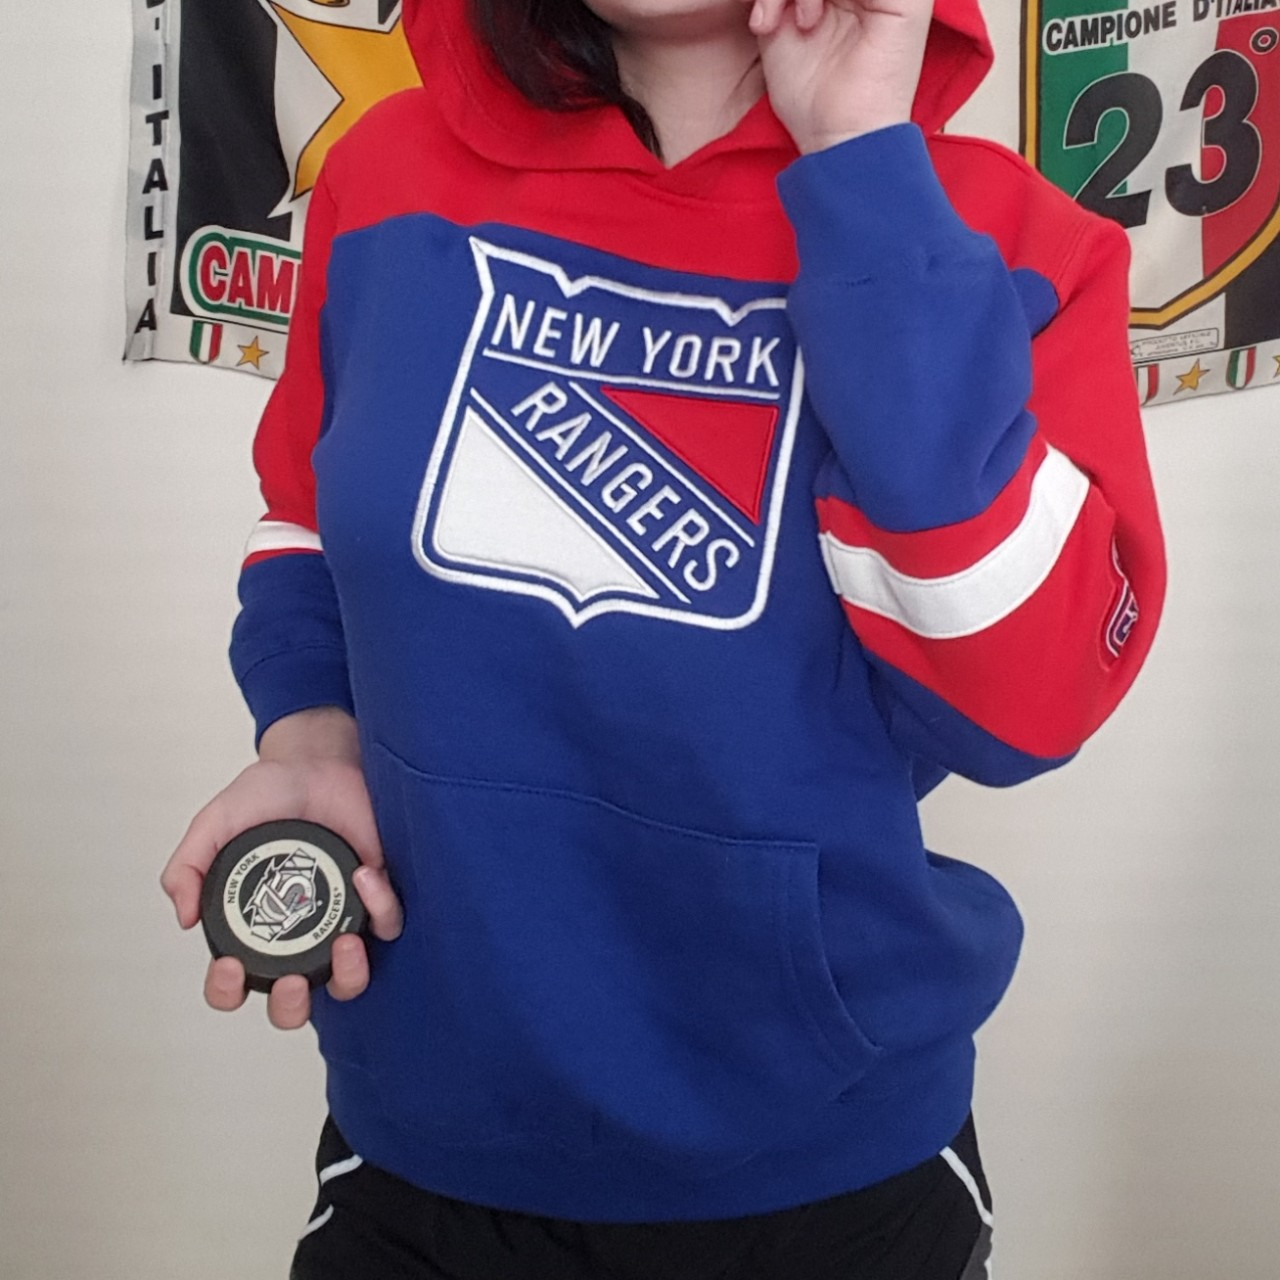 designer fashion 900cf 6ad20 Officially Licensed NHL New York Rangers Hoodie - NY ...